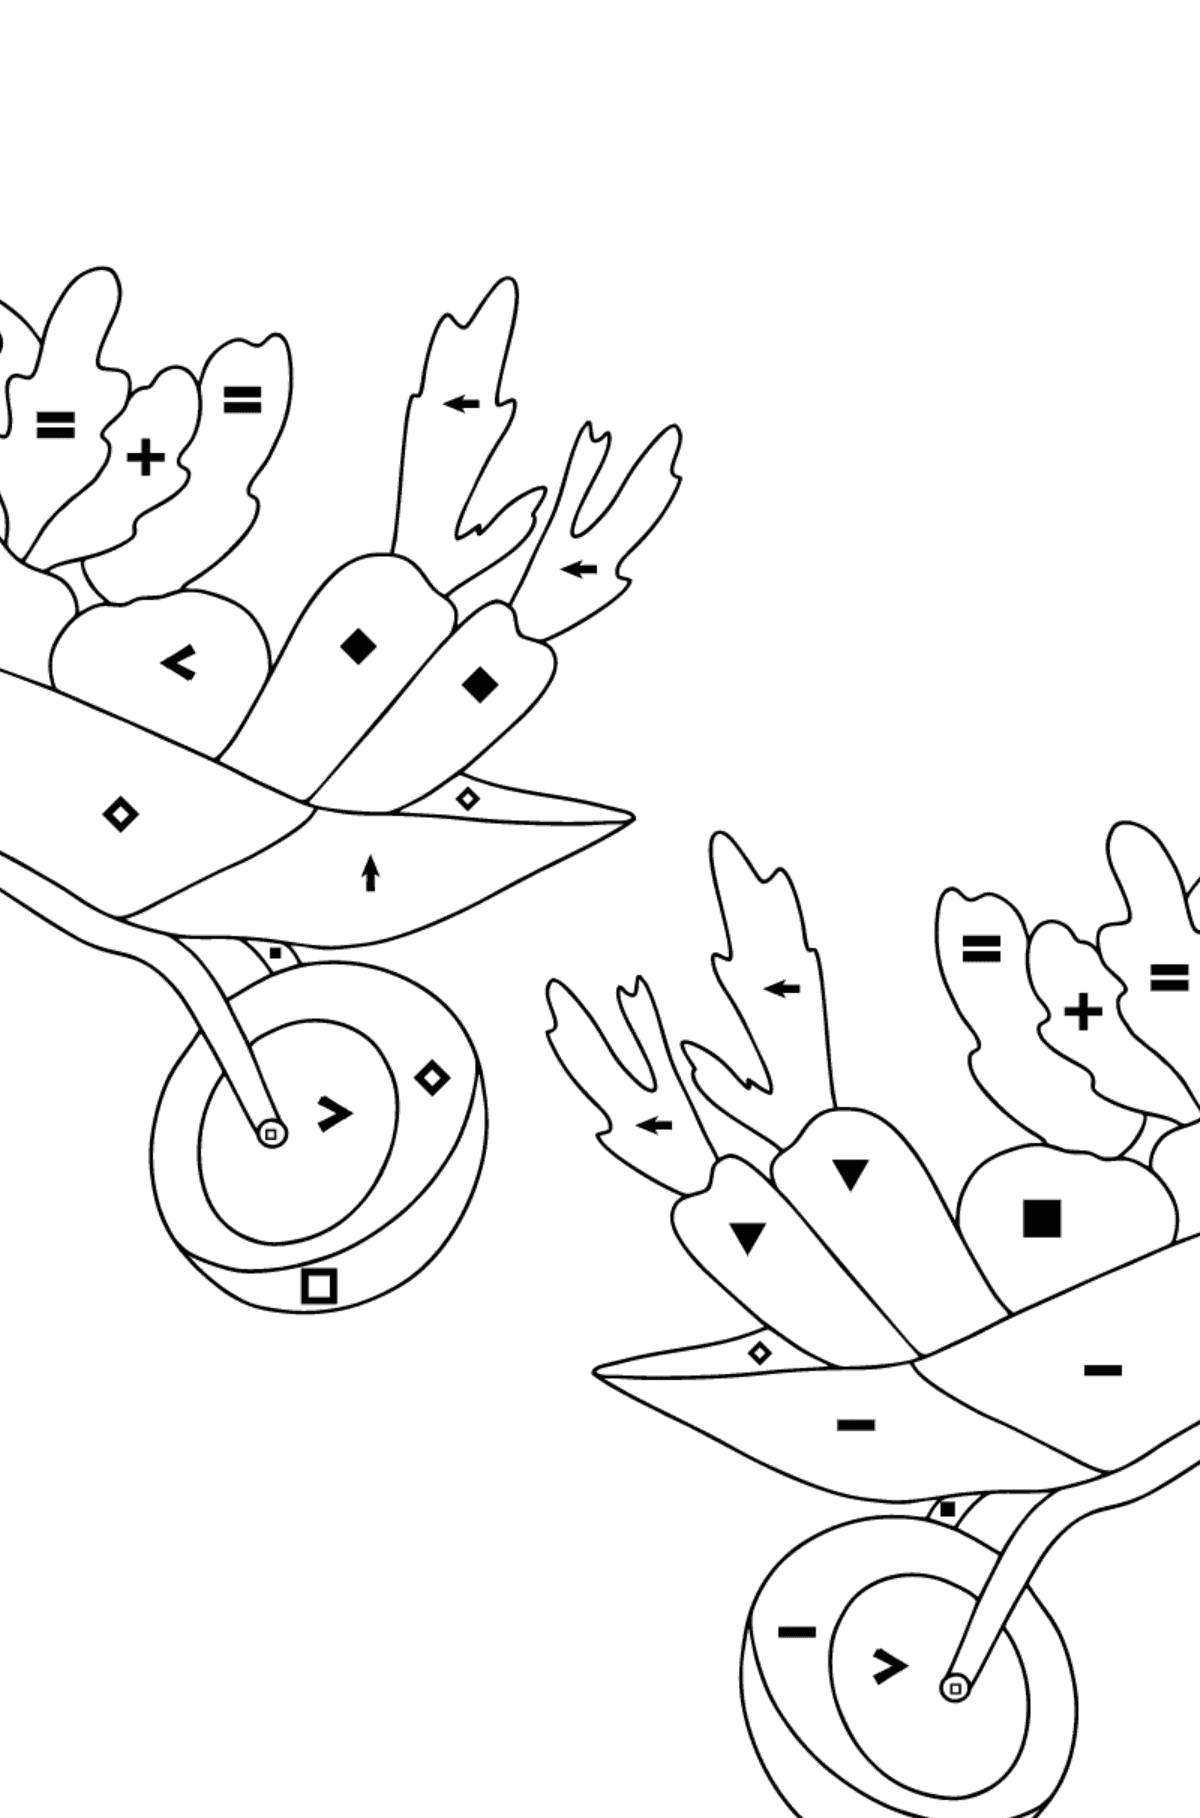 Coloring Page - Hippos in a Garden with Carts for Children  - Color by Special Symbols